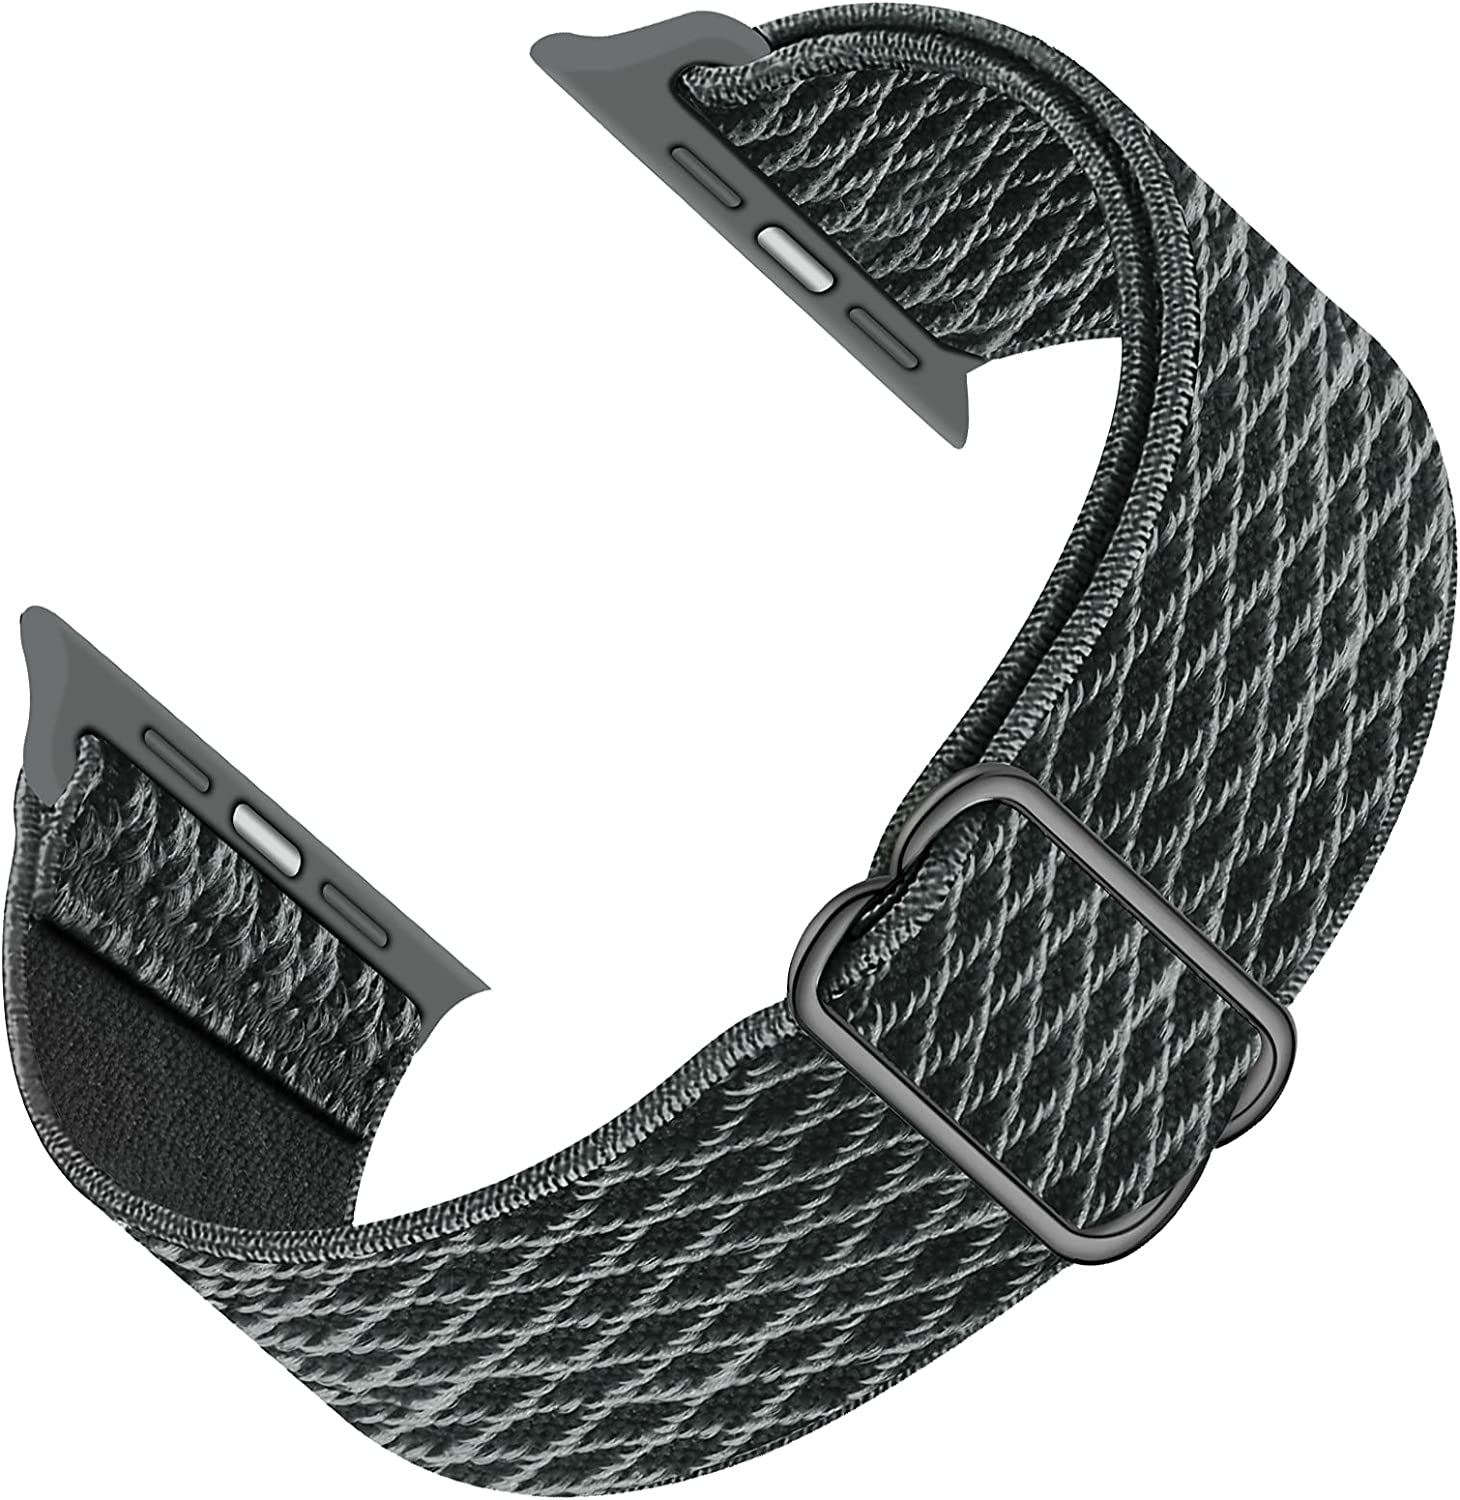 GZ GZHISY Sport Bands Compatible with Apple Watch 38mm 40mm 42mm 44mm iWatch Series 6 5 SE 4 3 2 1 Strap, Women Men Nylon Solo Loop Adjustable Stretchy Braided Elastic Bracelet Weave Soft Breathable